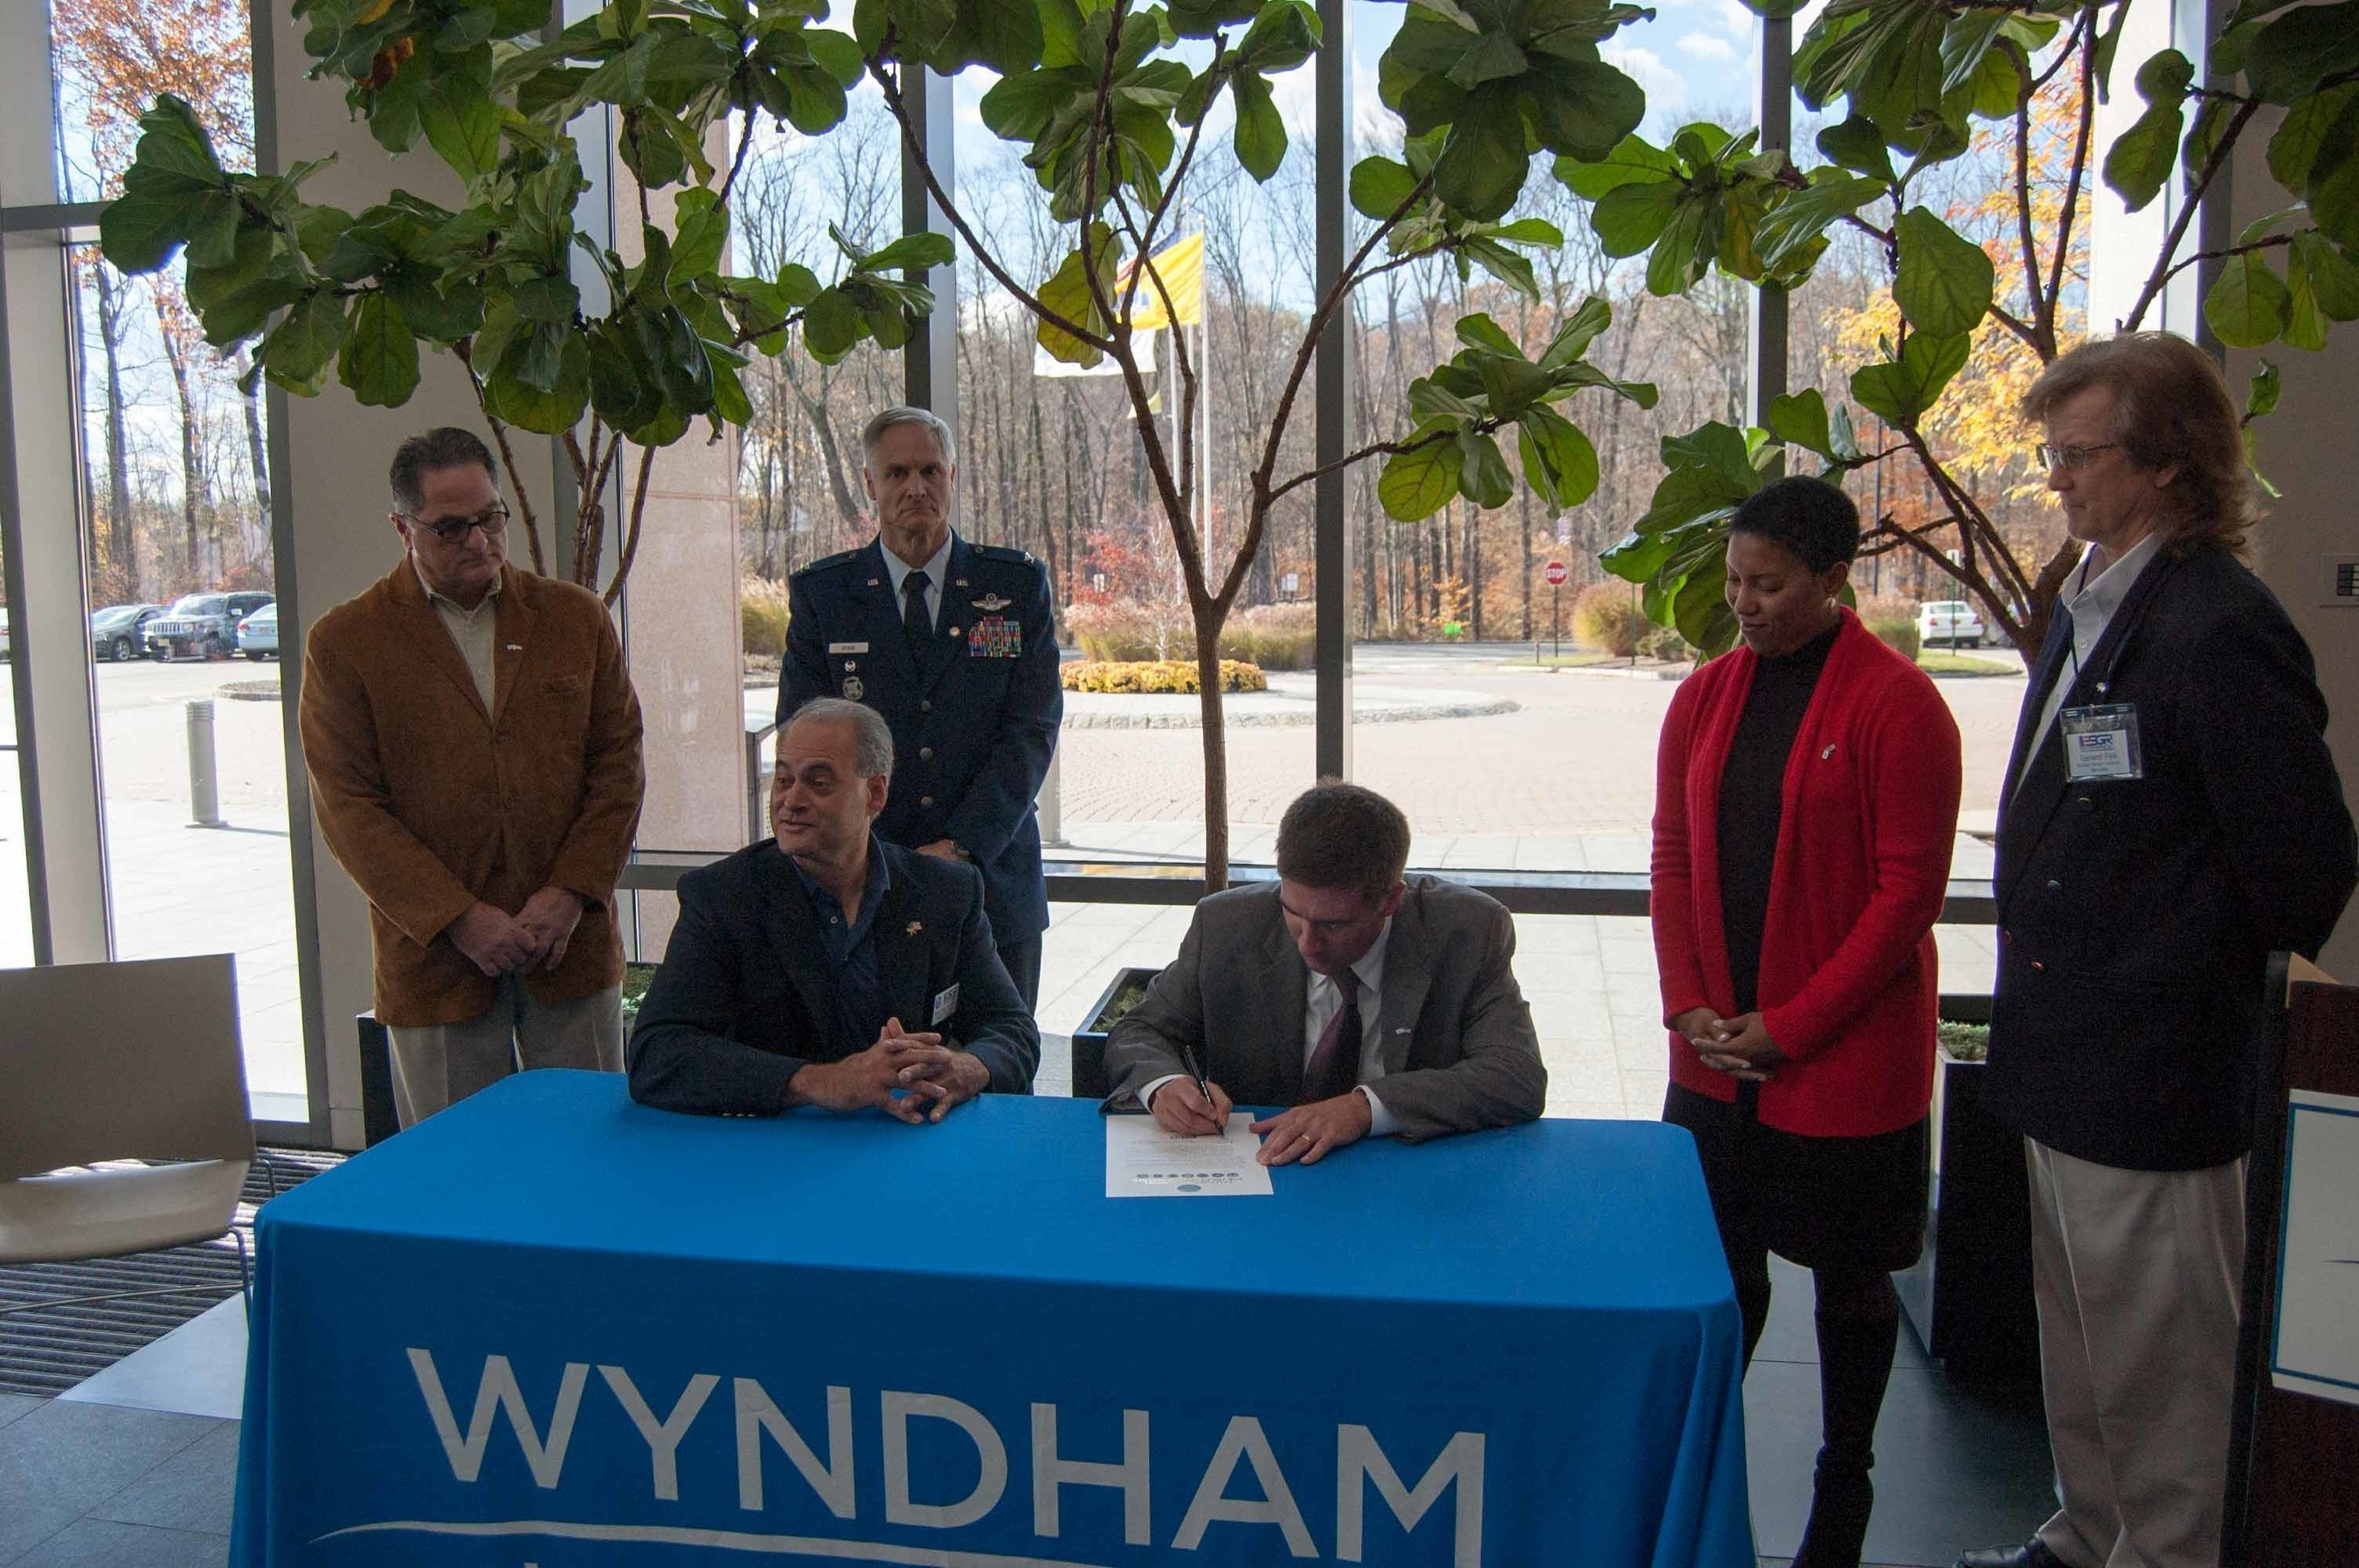 Wyndham Worldwide associates and representatives of the Employer Support of the Guard and Reserve (ESGR) gather as Wyndham Worldwide signs the ESGR Statement of Support in Parsippany, N.J. on November 11, 2016.